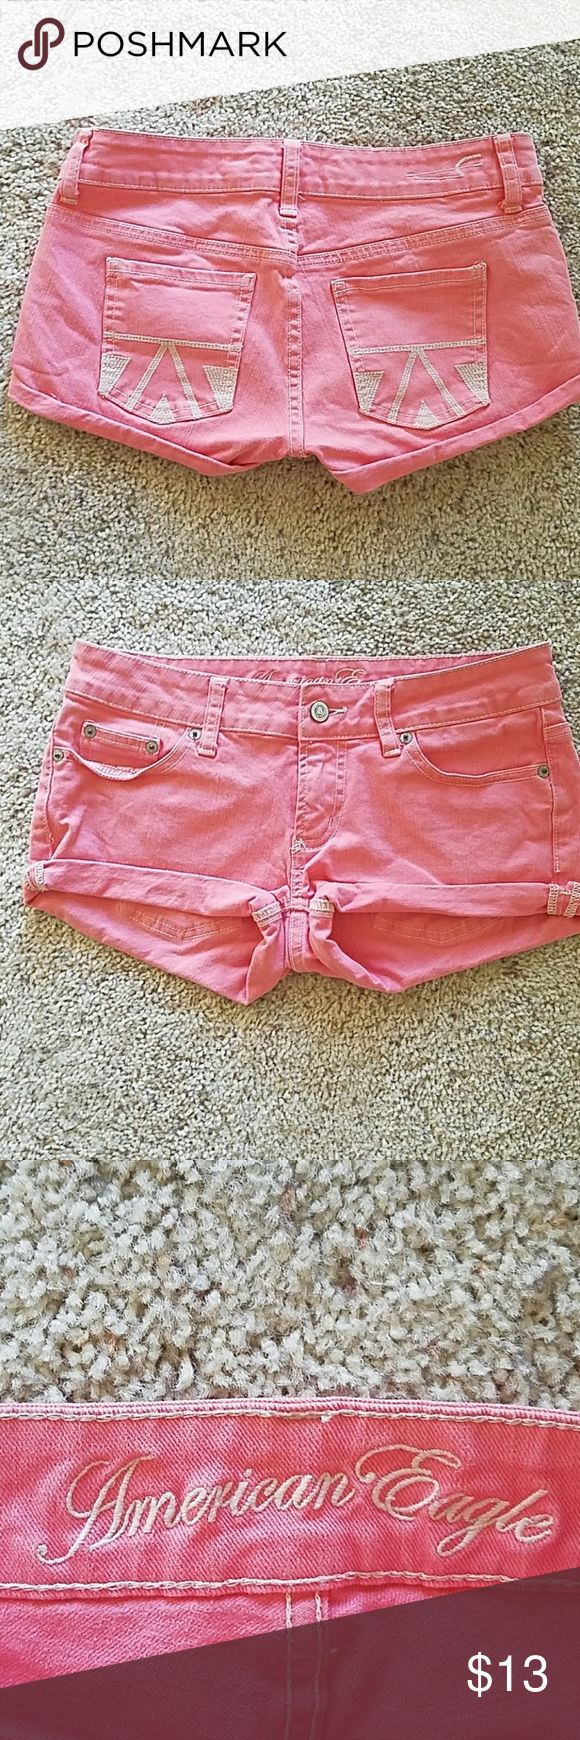 AMERICAN EAGLE  (2) GREAT PAIR OF CORAL JEAN SHORTS IN GREAT CONDITION!!! American Eagle Outfitters Shorts Jean Shorts